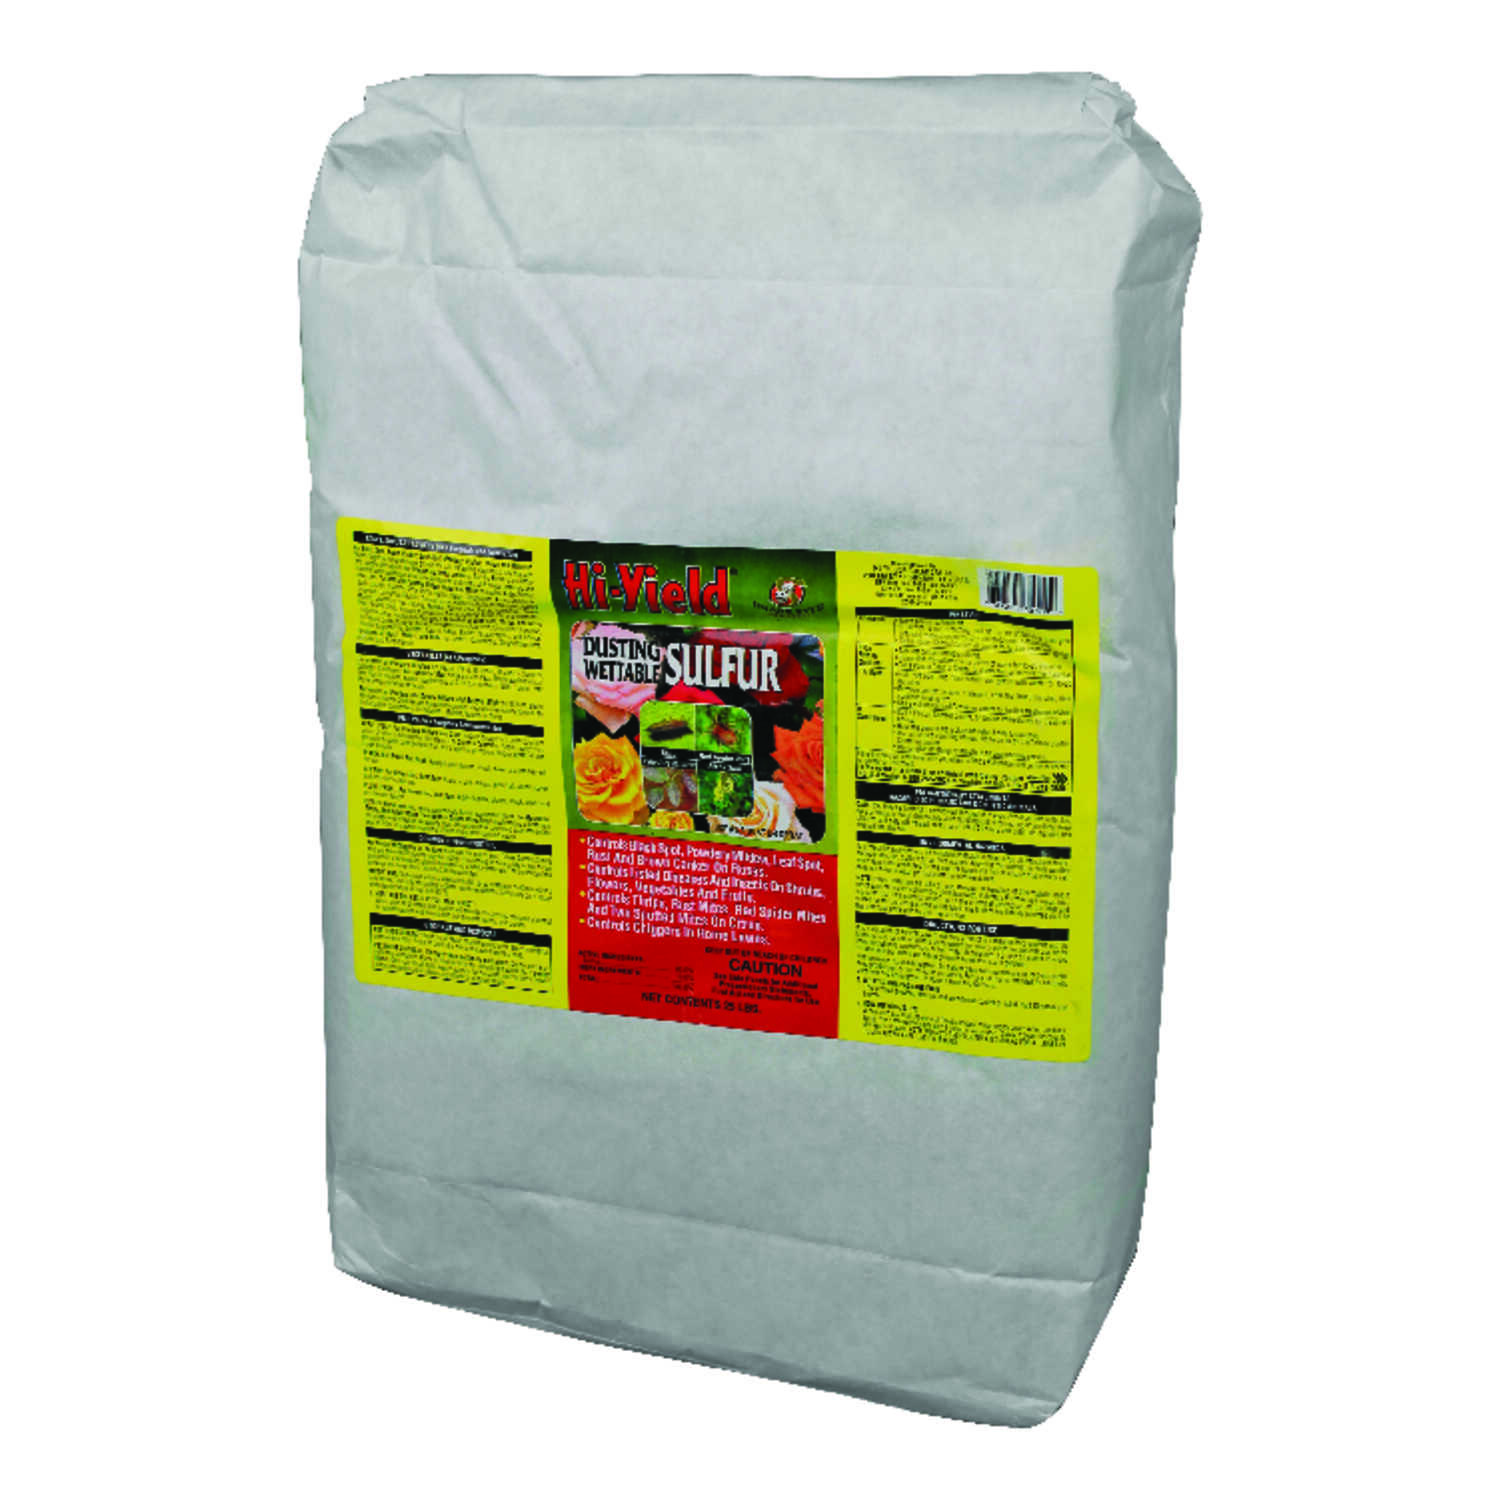 Hi-Yield  Dusting Wettable Sulfur  Insect Killer  25 lb.